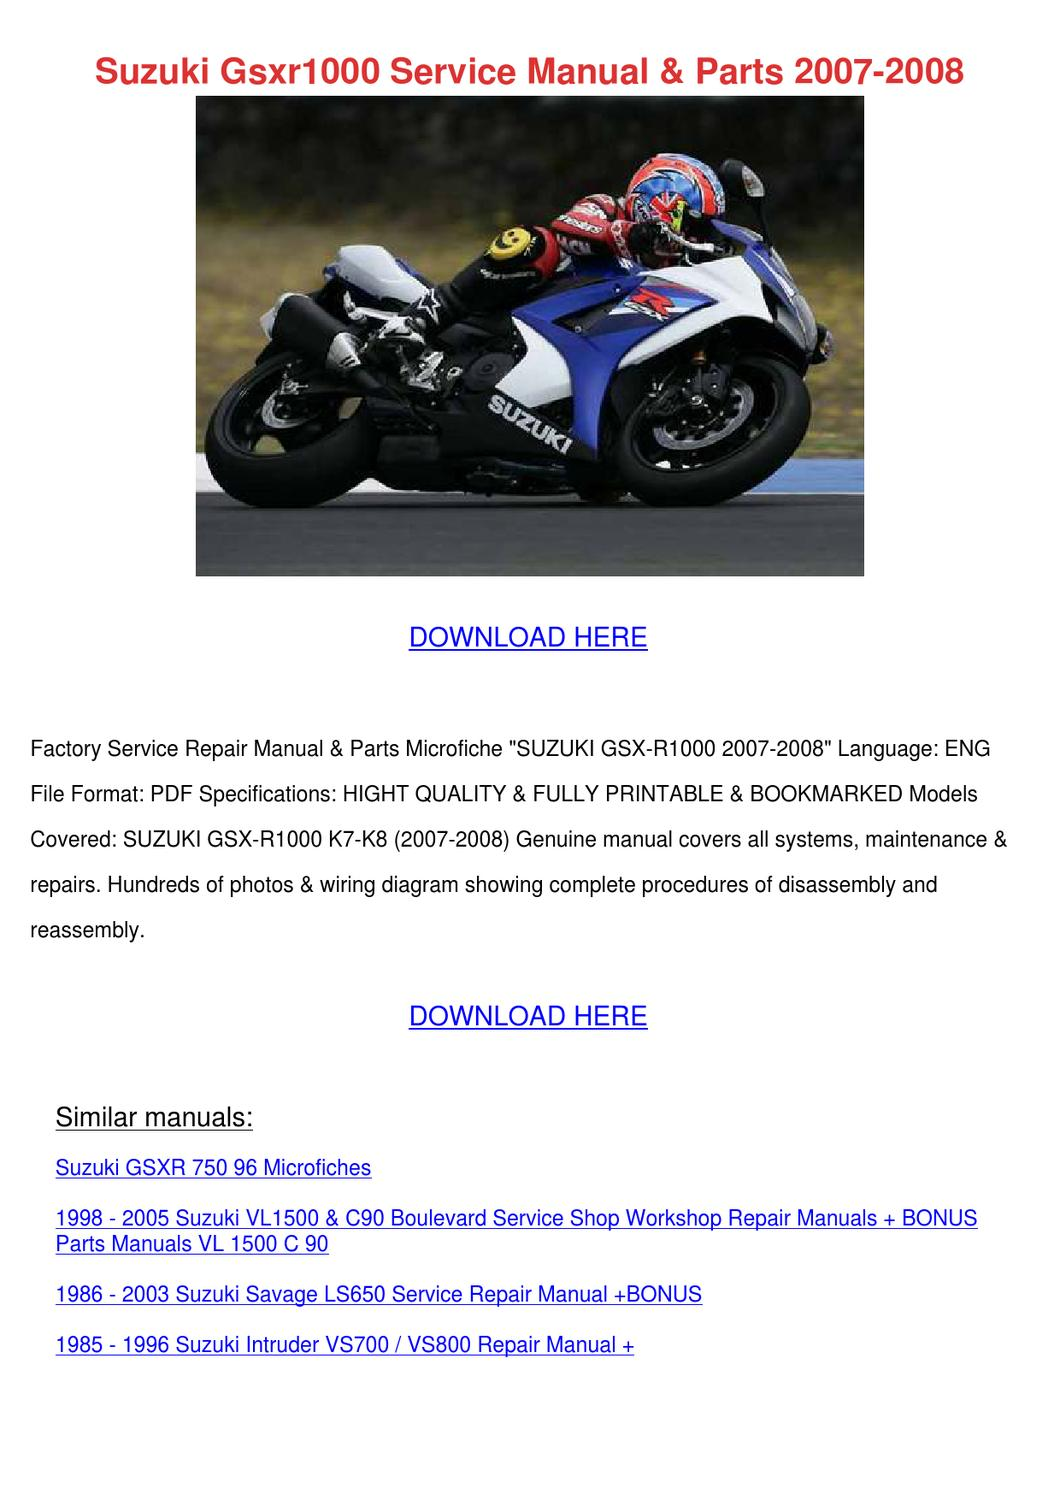 Suzuki Gsxr1000 Service Manual Parts 2007 200 By Jillian